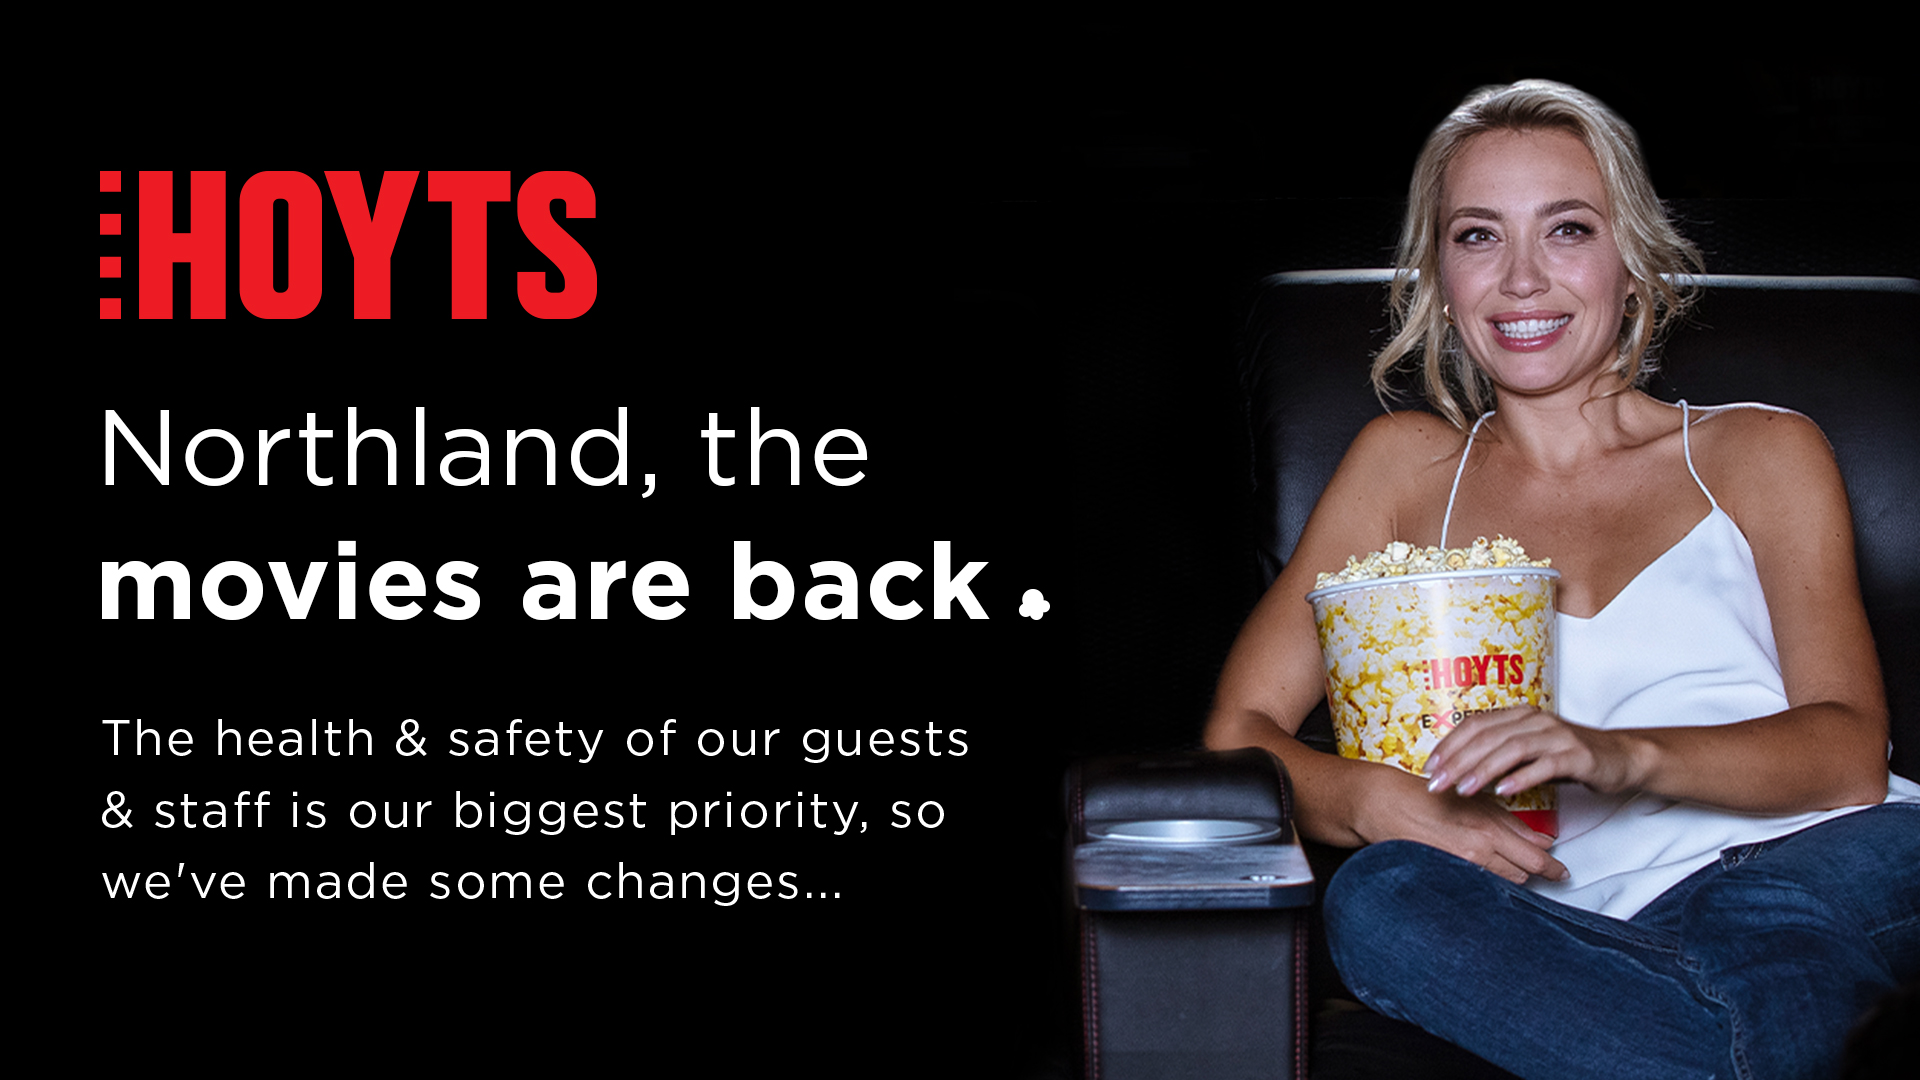 Hoyts Northland is Reopening